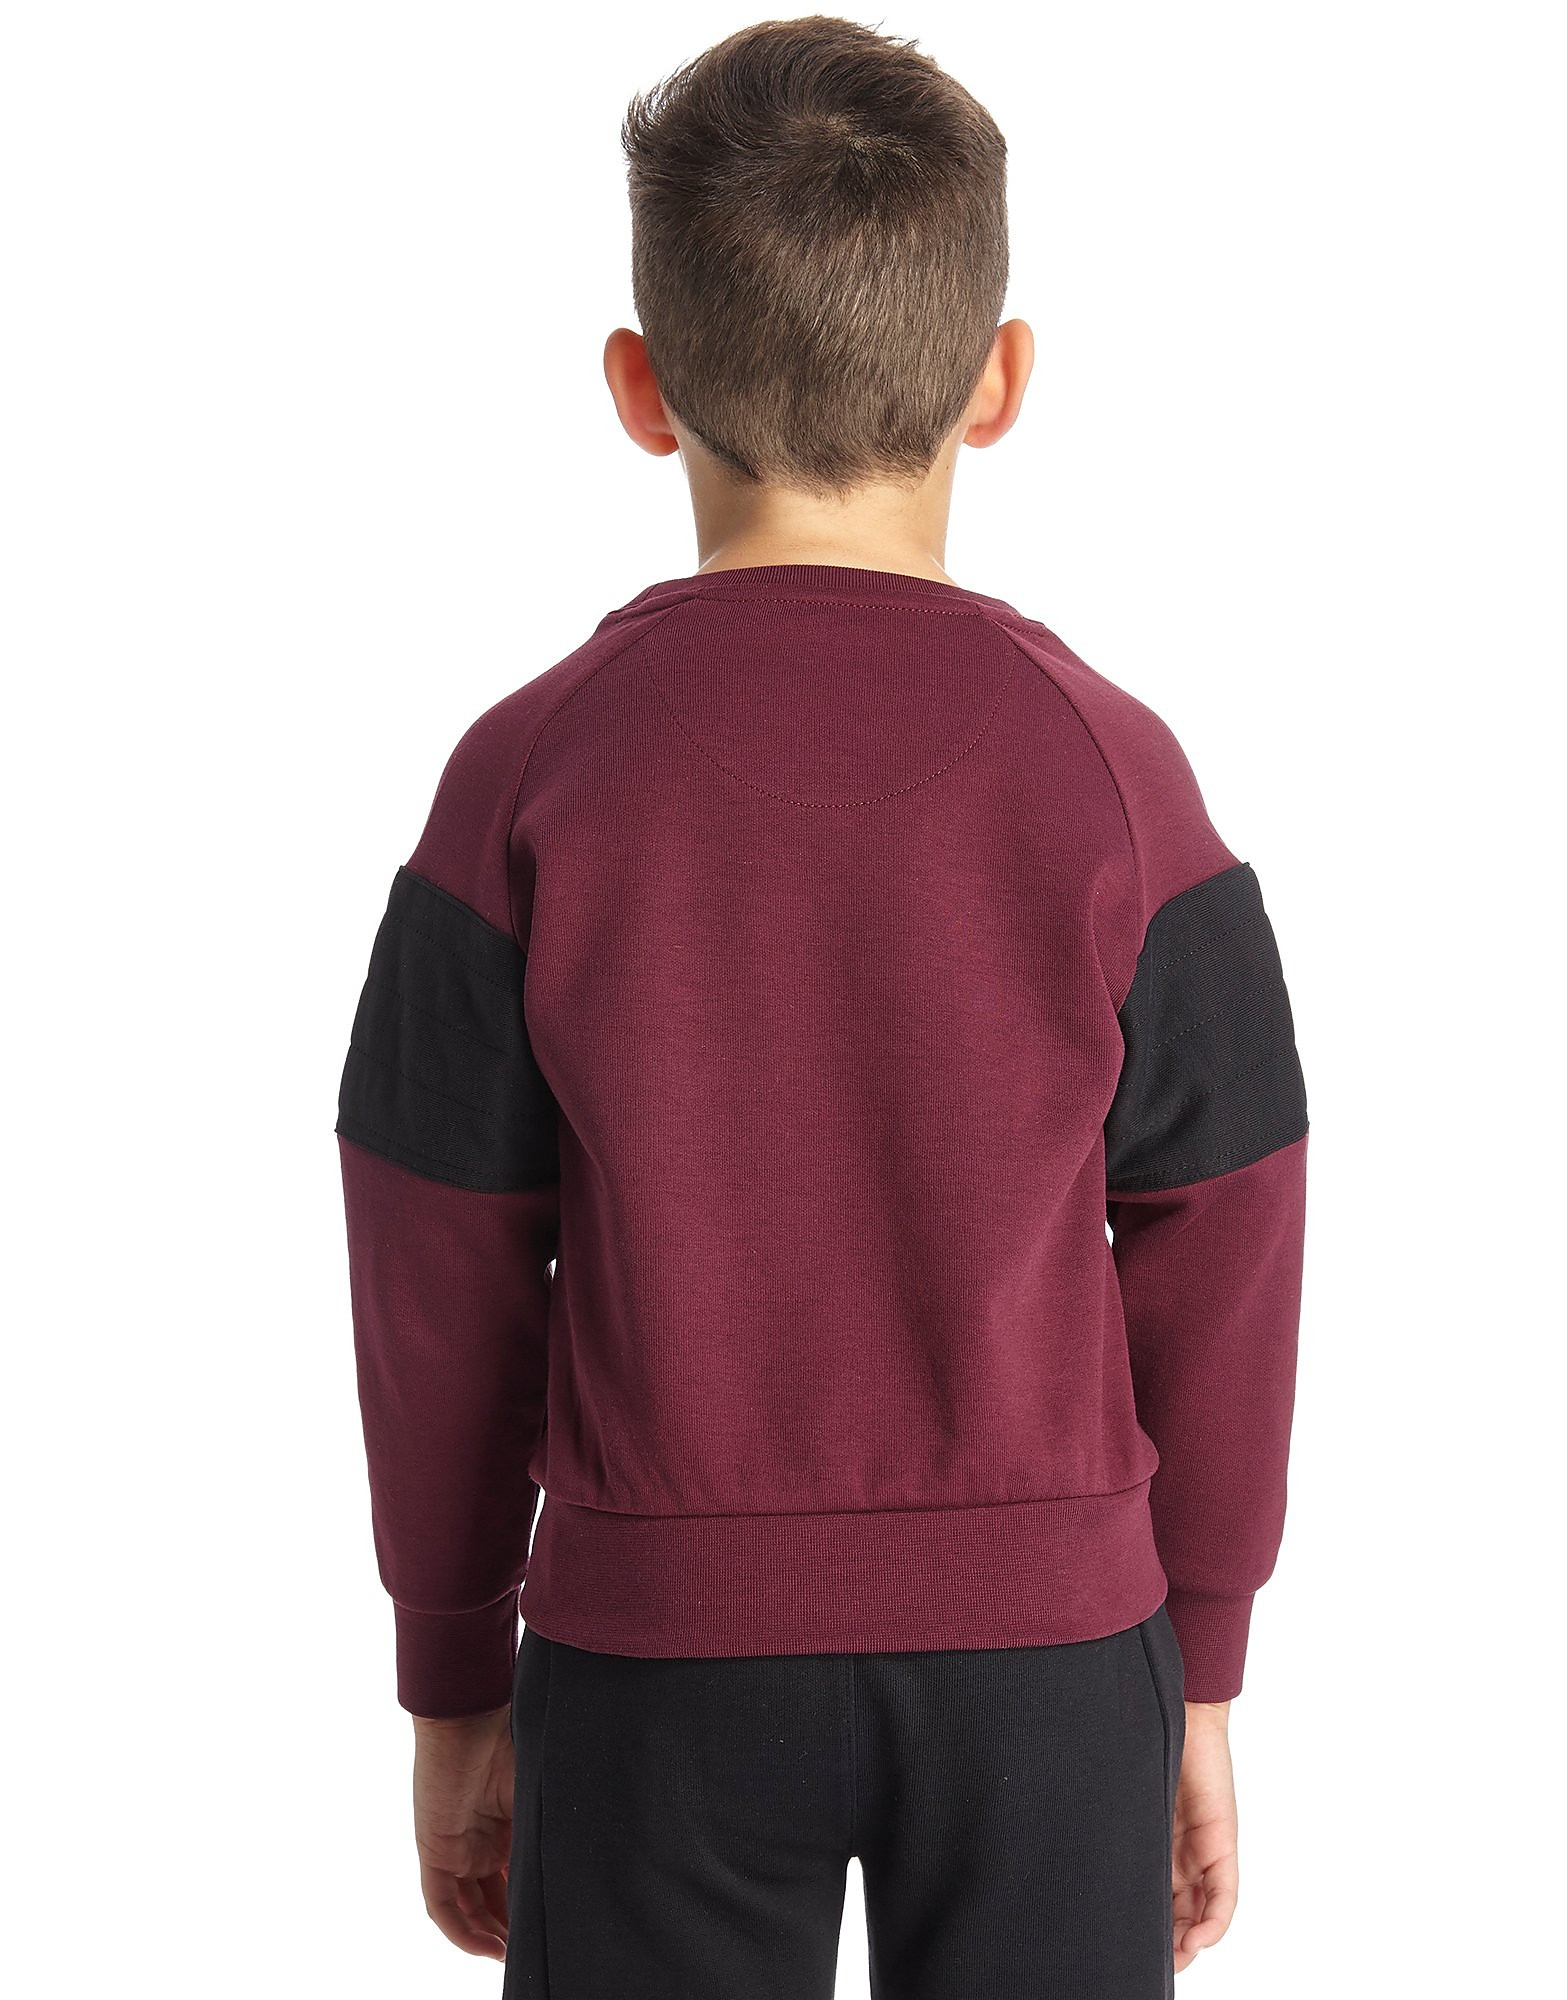 Duffer of St George Earl Crew Neck Sweatshirt Children